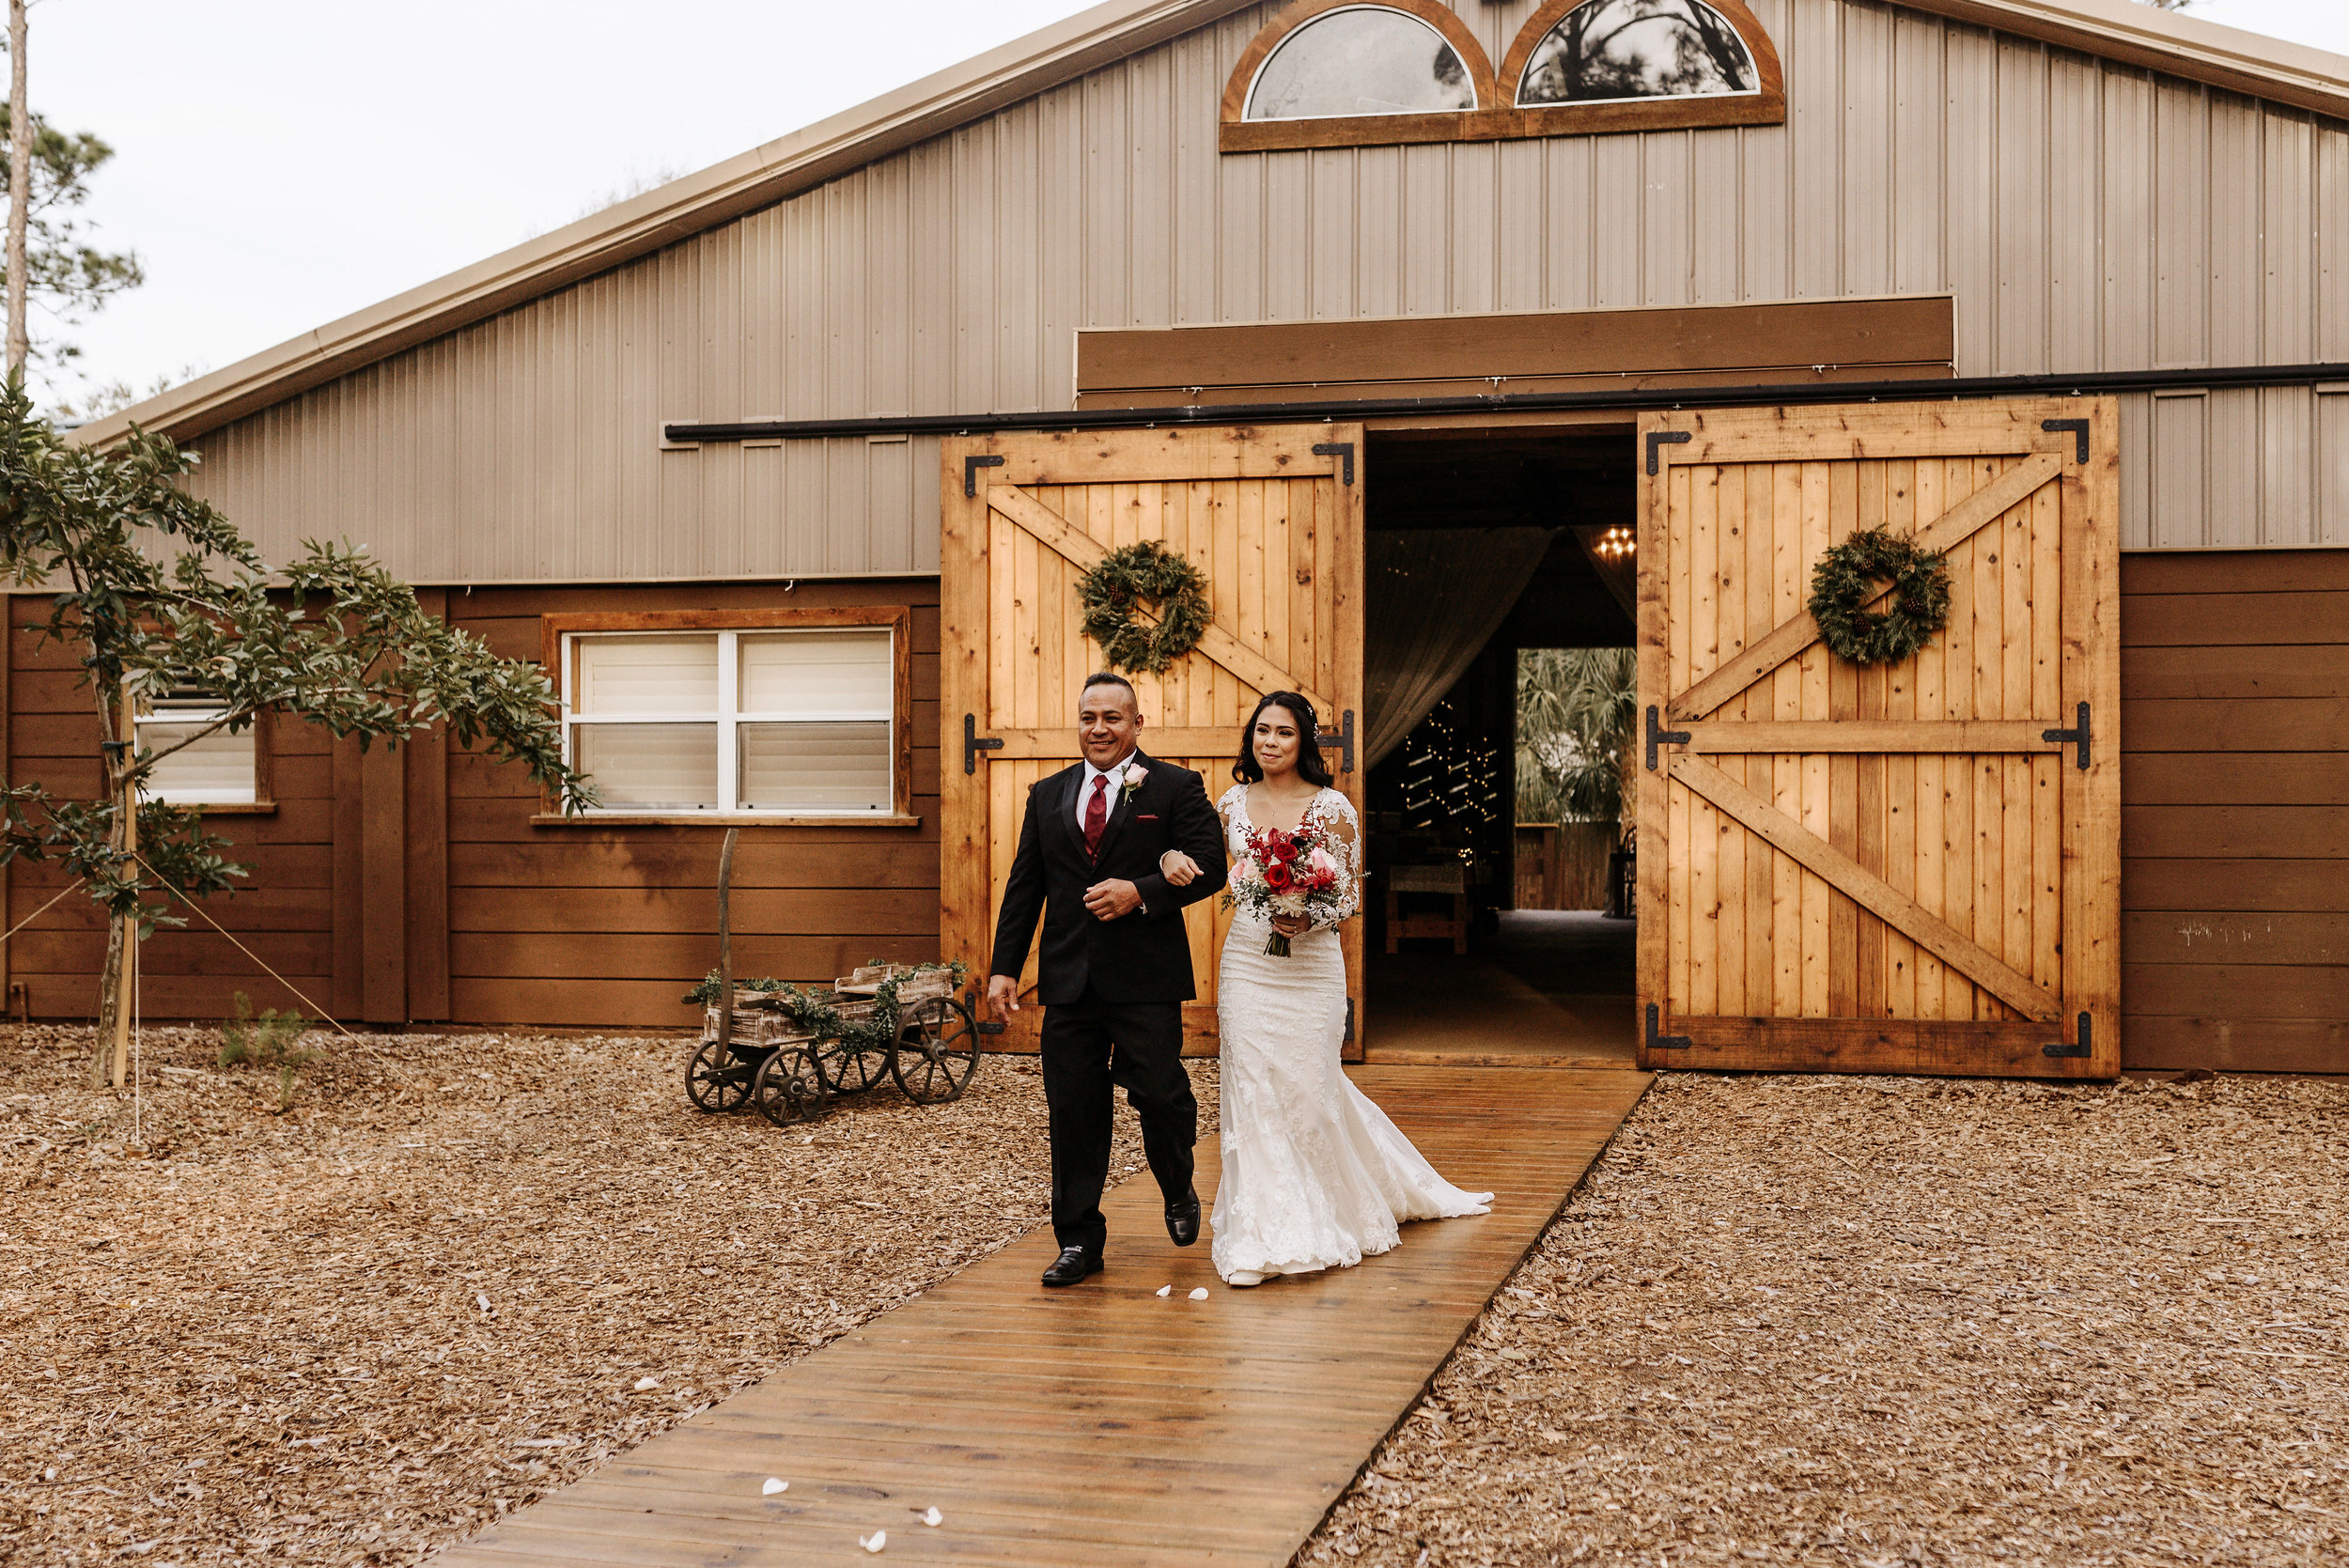 Alexia_Celeste_Wedding_Cielo_Blu_Barn_Photography_by_V_6283.jpg